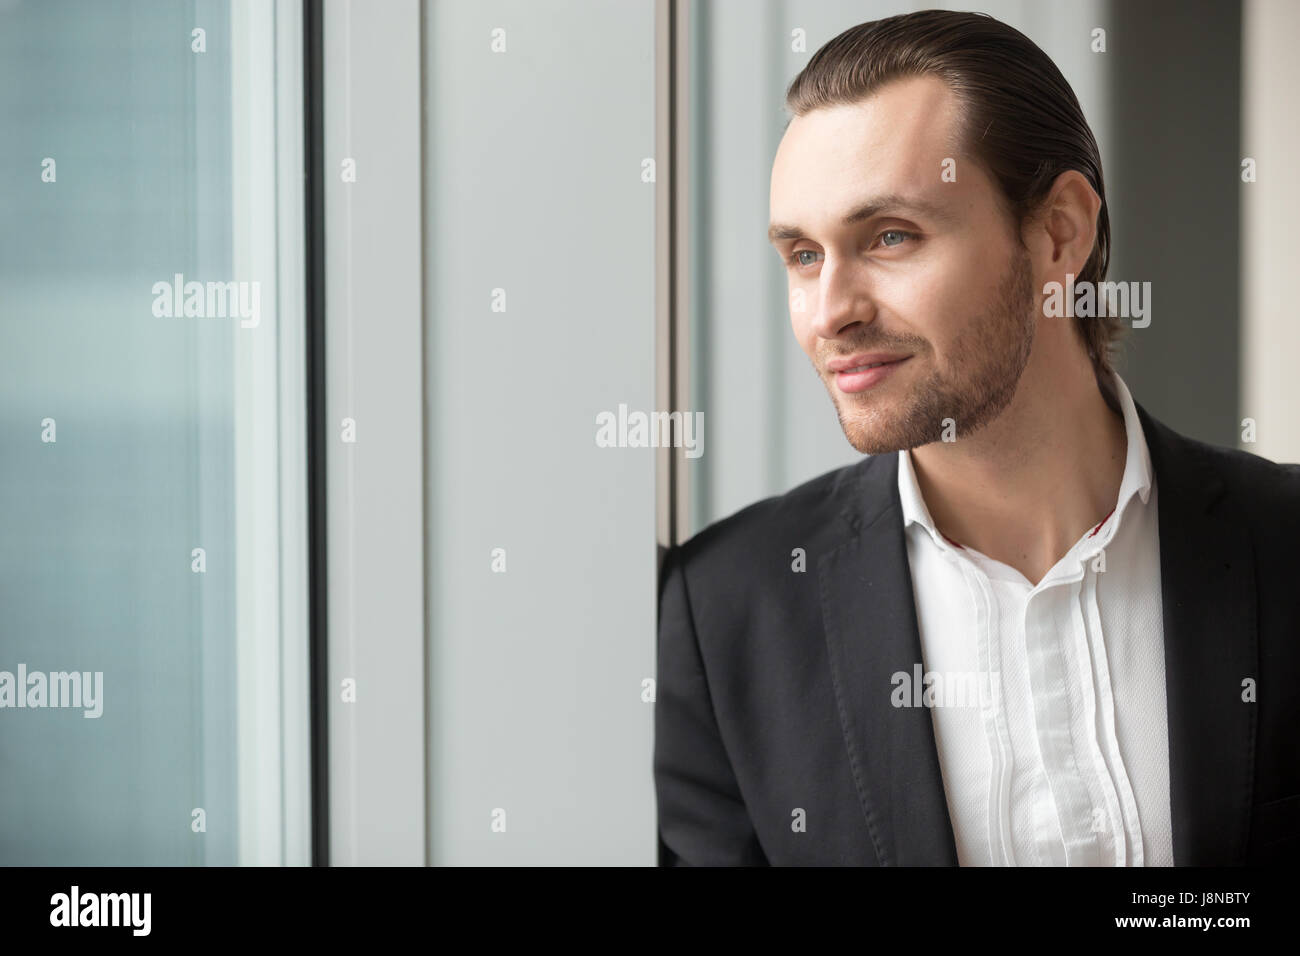 Successful businessman imagines great career - Stock Image